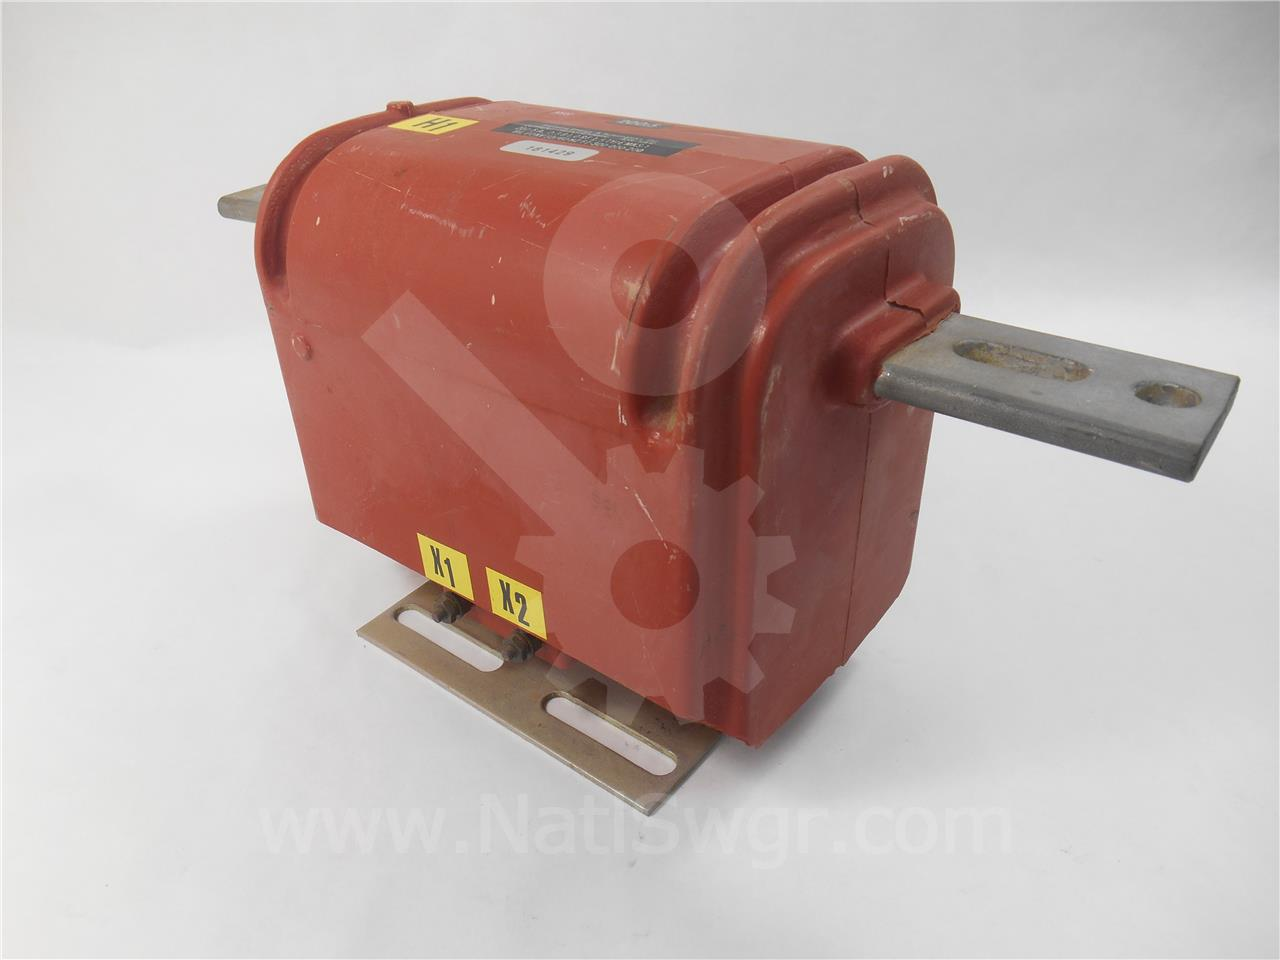 61-300-000-200 Siemens / Allis Chalmers CURRENT TRANSFORMER, 200:5 BAR TYPE